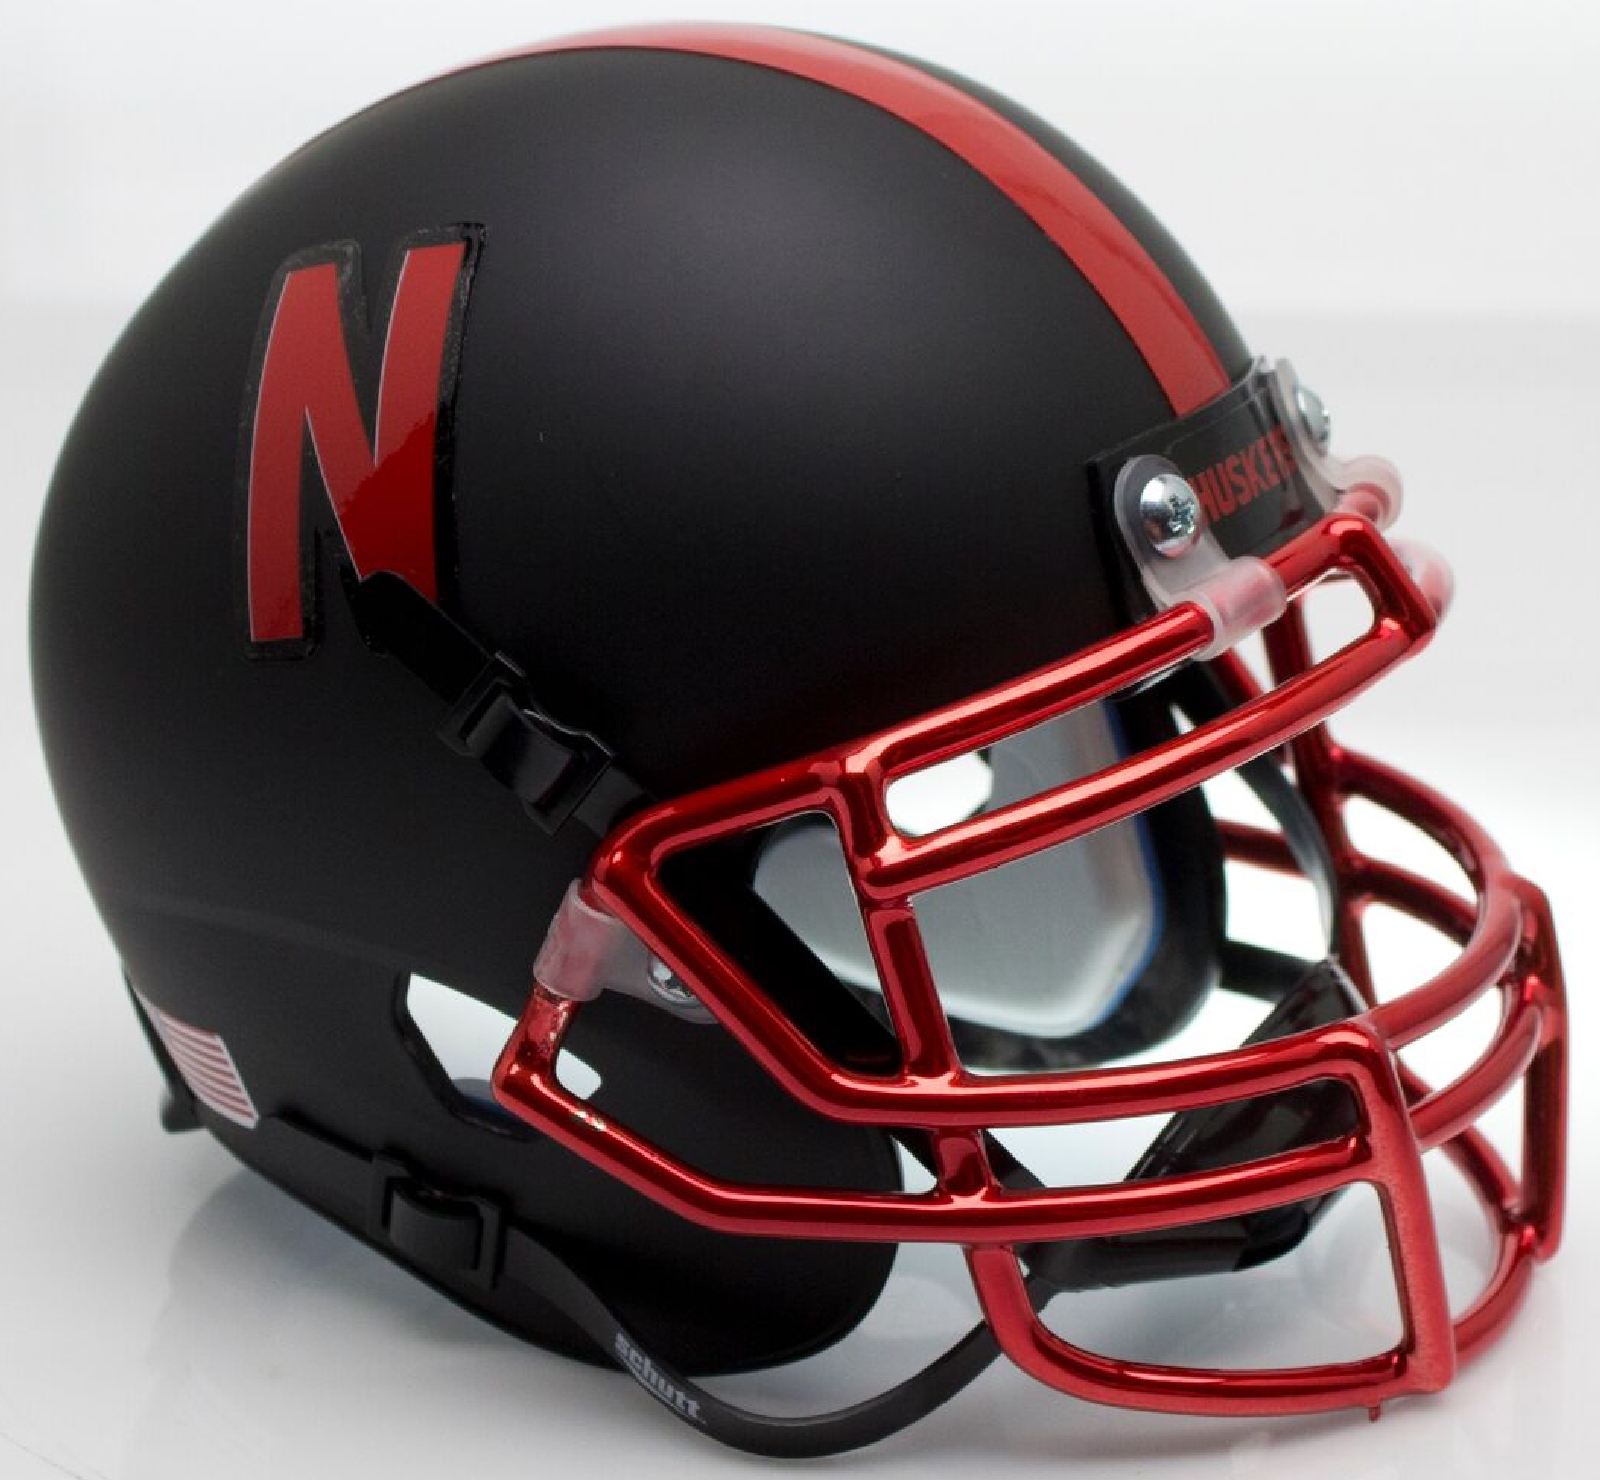 Nebraska Cornhuskers Miniature Football Helmet Desk Caddy <B>Chrome Mask</B>